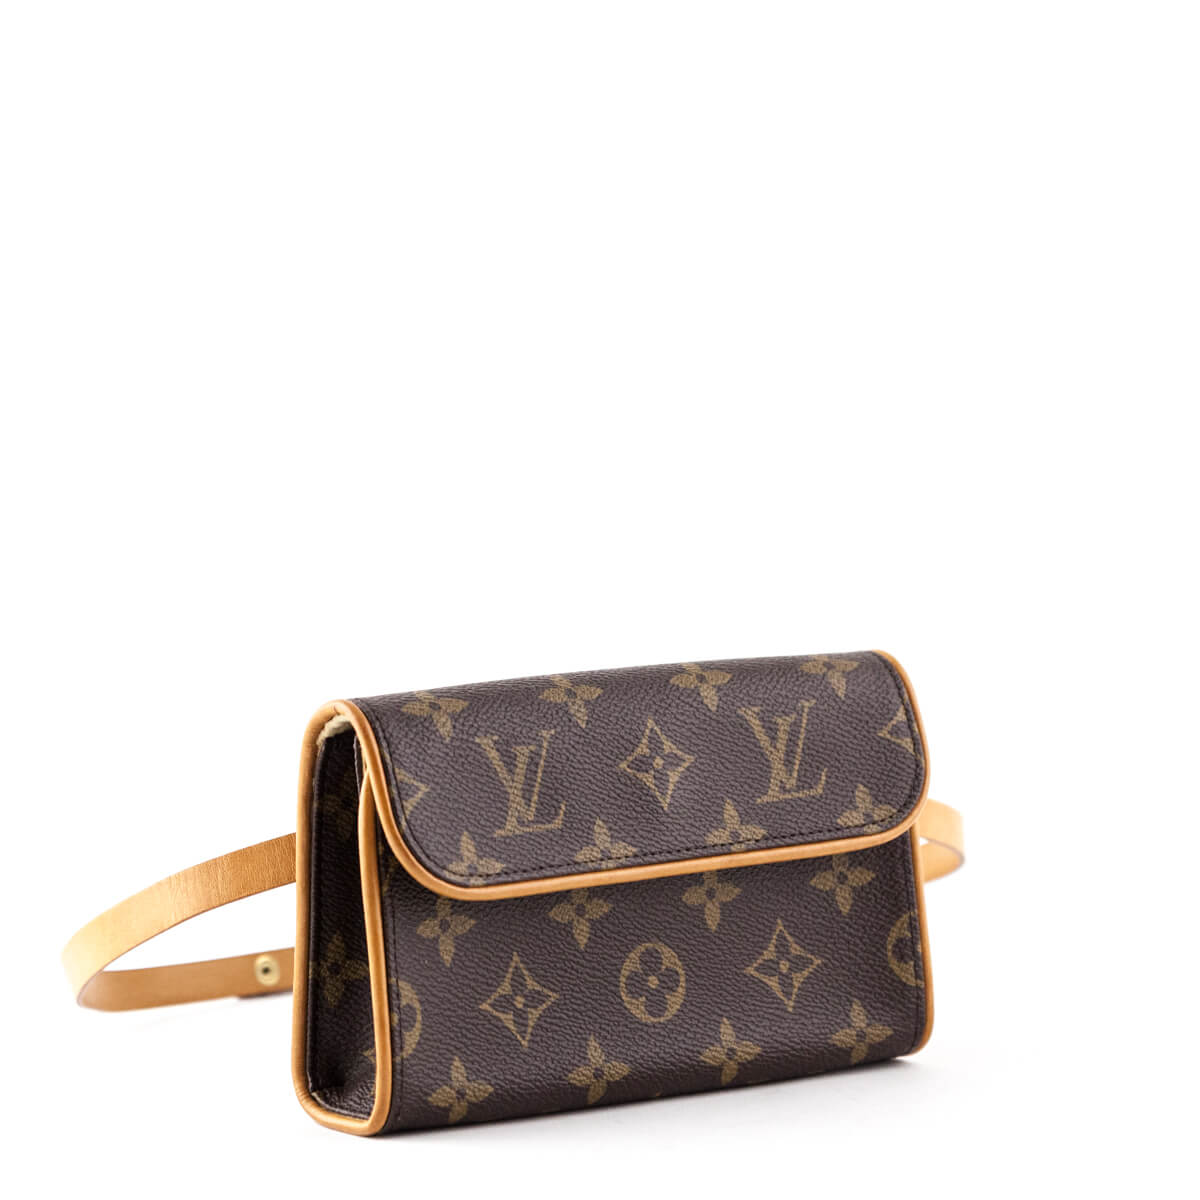 e20dc4f94fad ... Louis Vuitton Monogram Florentine Pochette Belt Bag - LOVE that BAG -  Preowned Authentic Designer Handbags ...